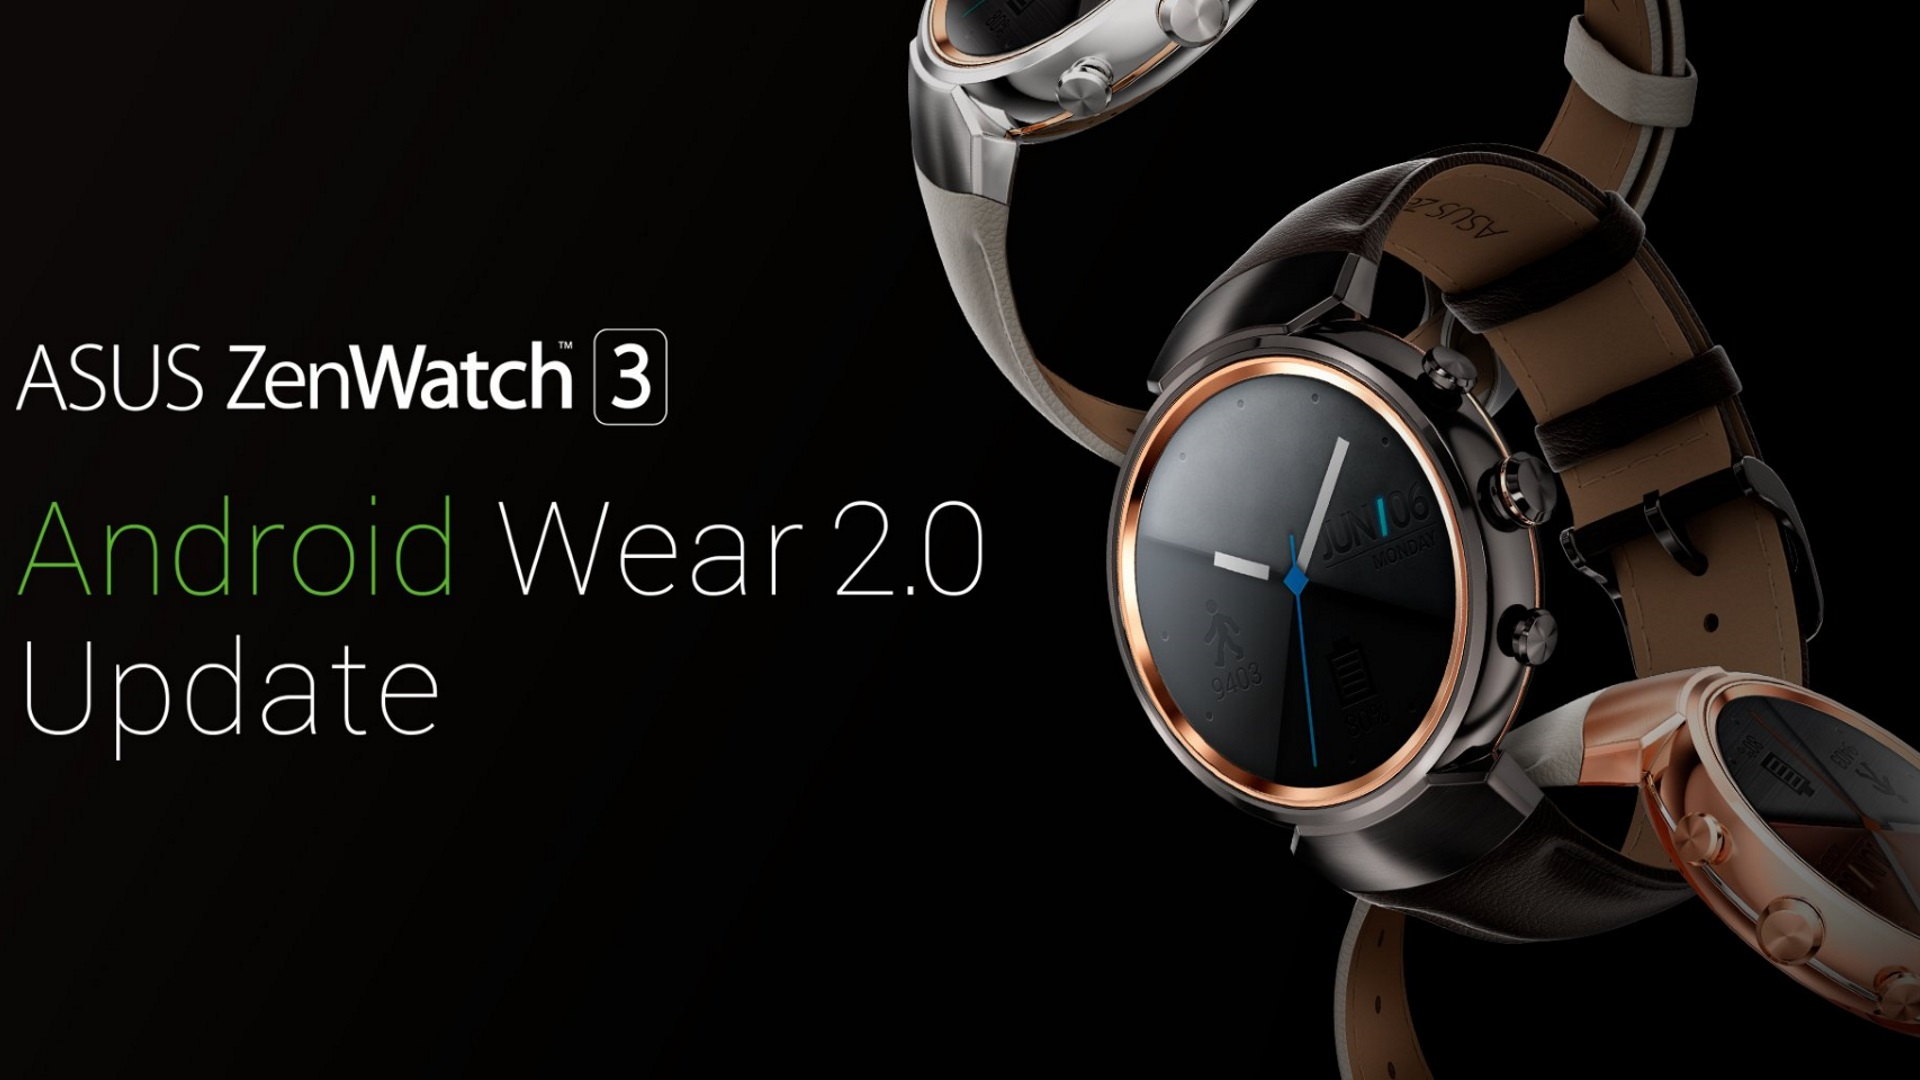 ASUS、「ZenWatch 3」Android Wear 2.0アップデート開始を正式発表【追記】